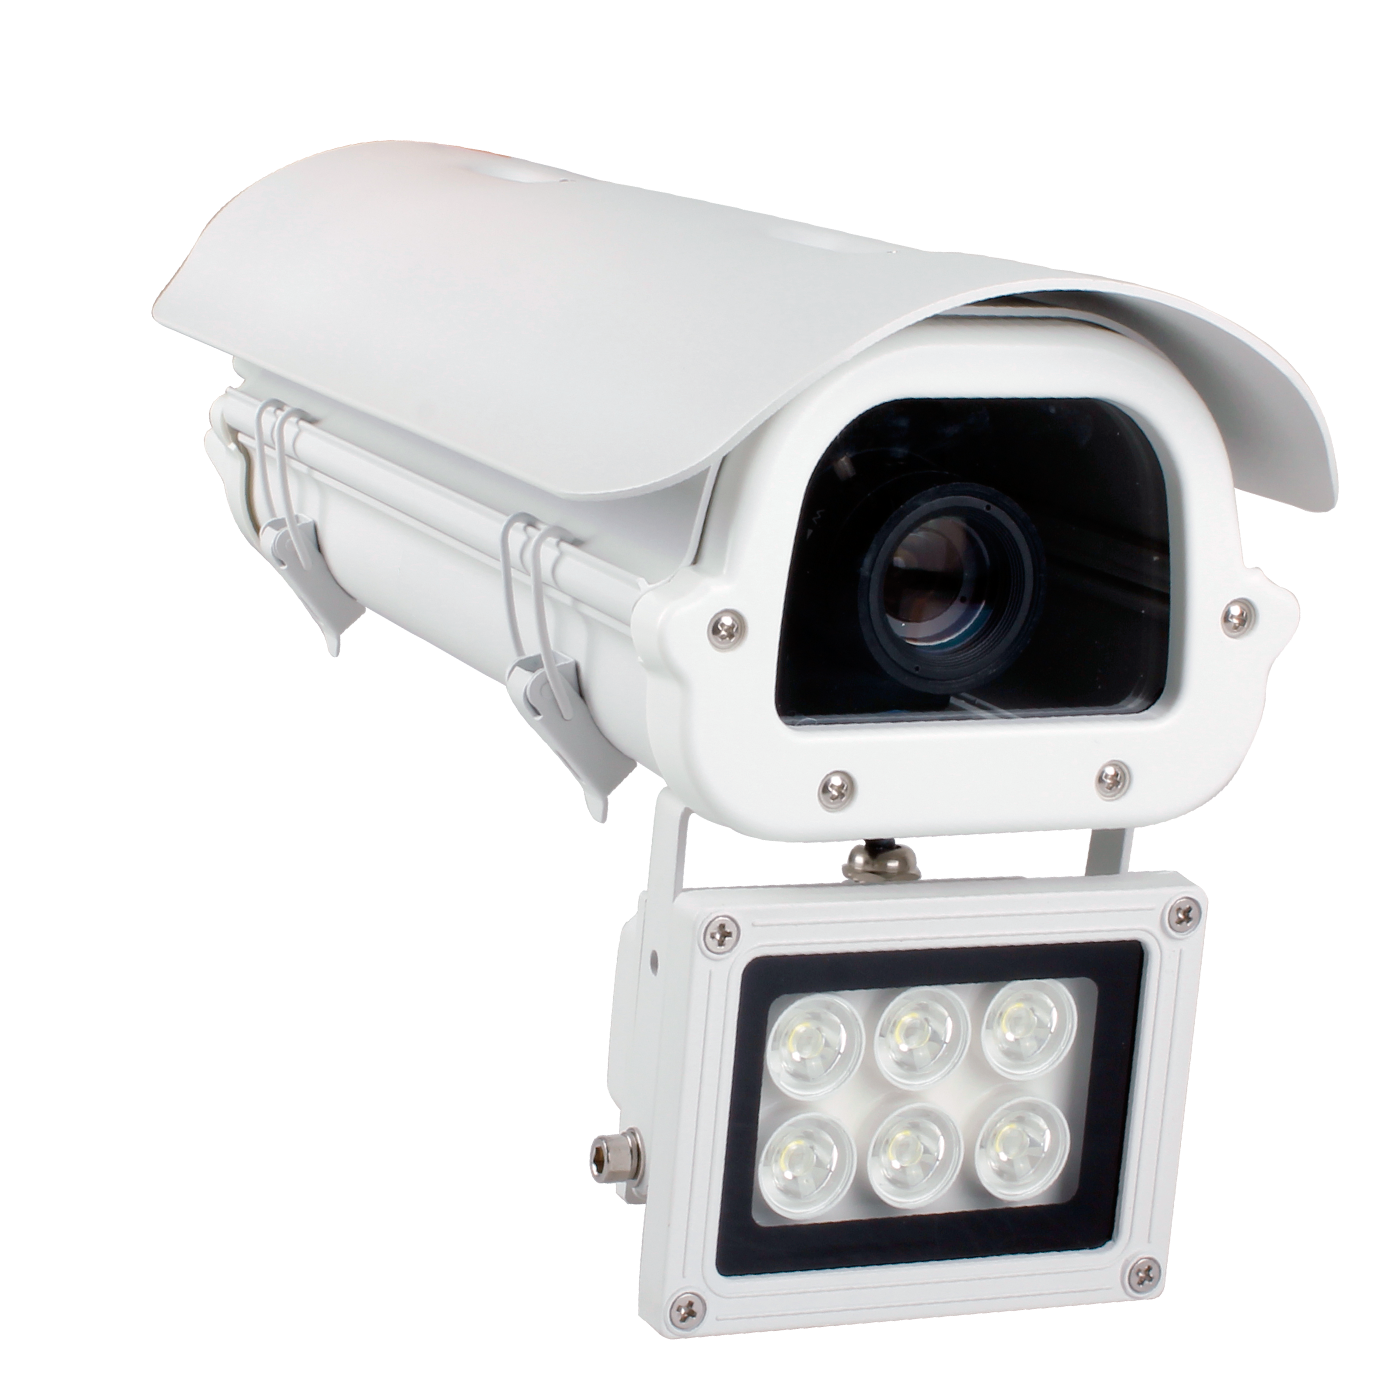 Tiandy TC-A58N5 Long Range H.265 Starlight 8MP 12.5-50mm Smart Network Bullet IP Outdoor Camera